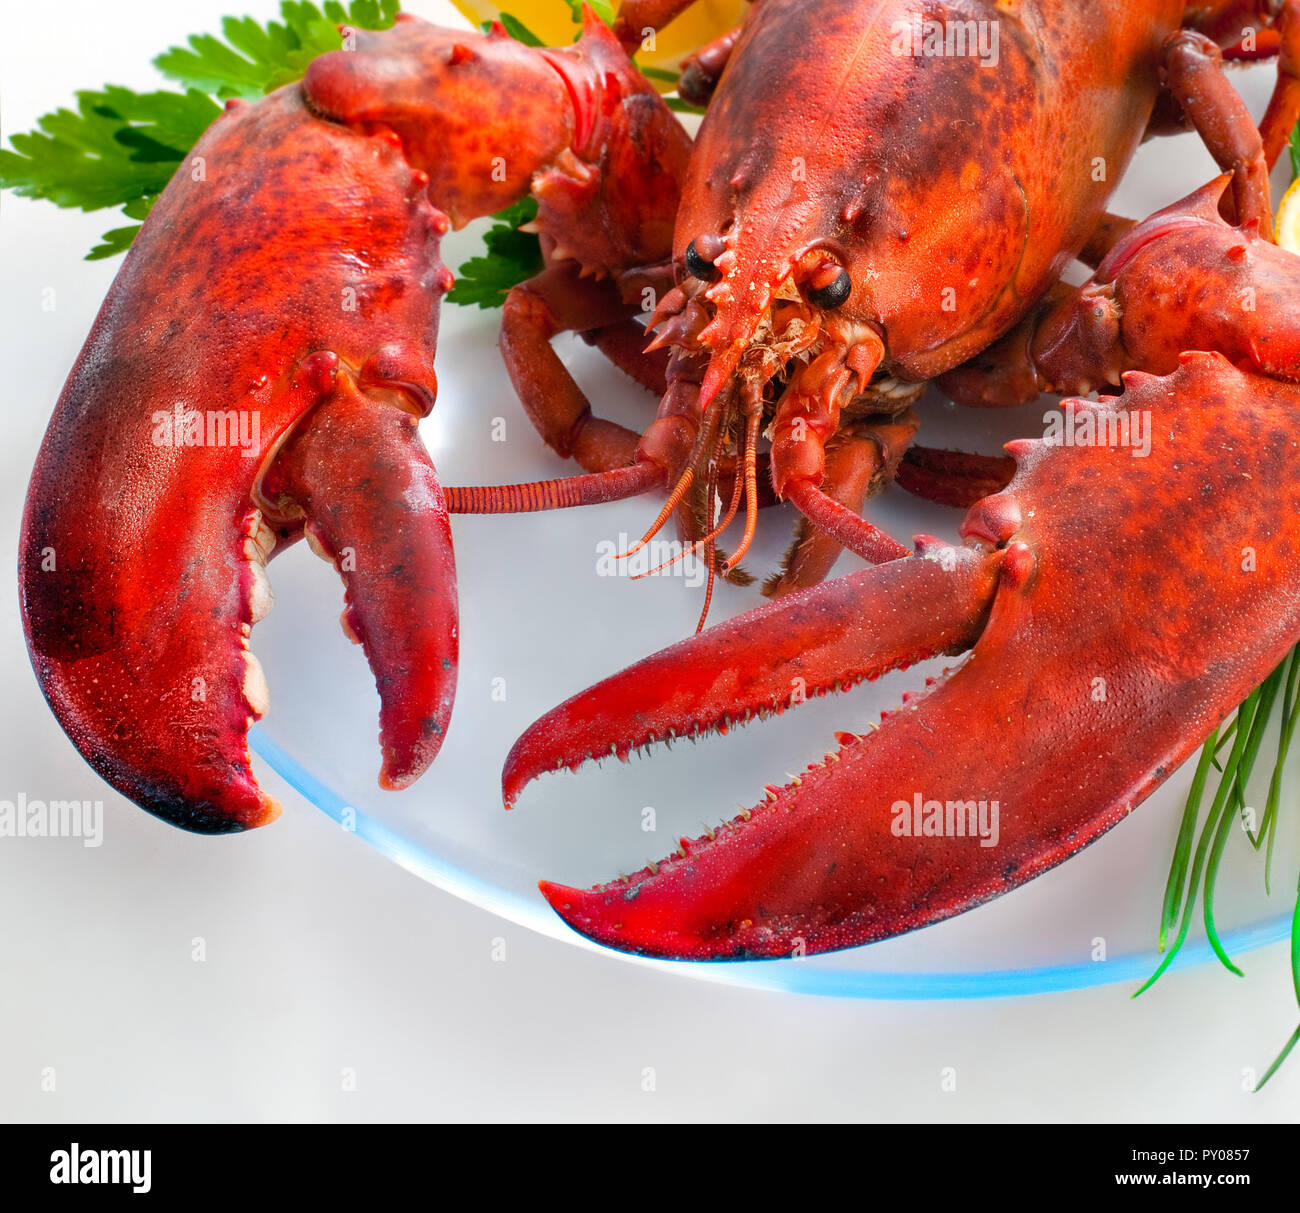 Cooked red whole lobster with big claws - Stock Image